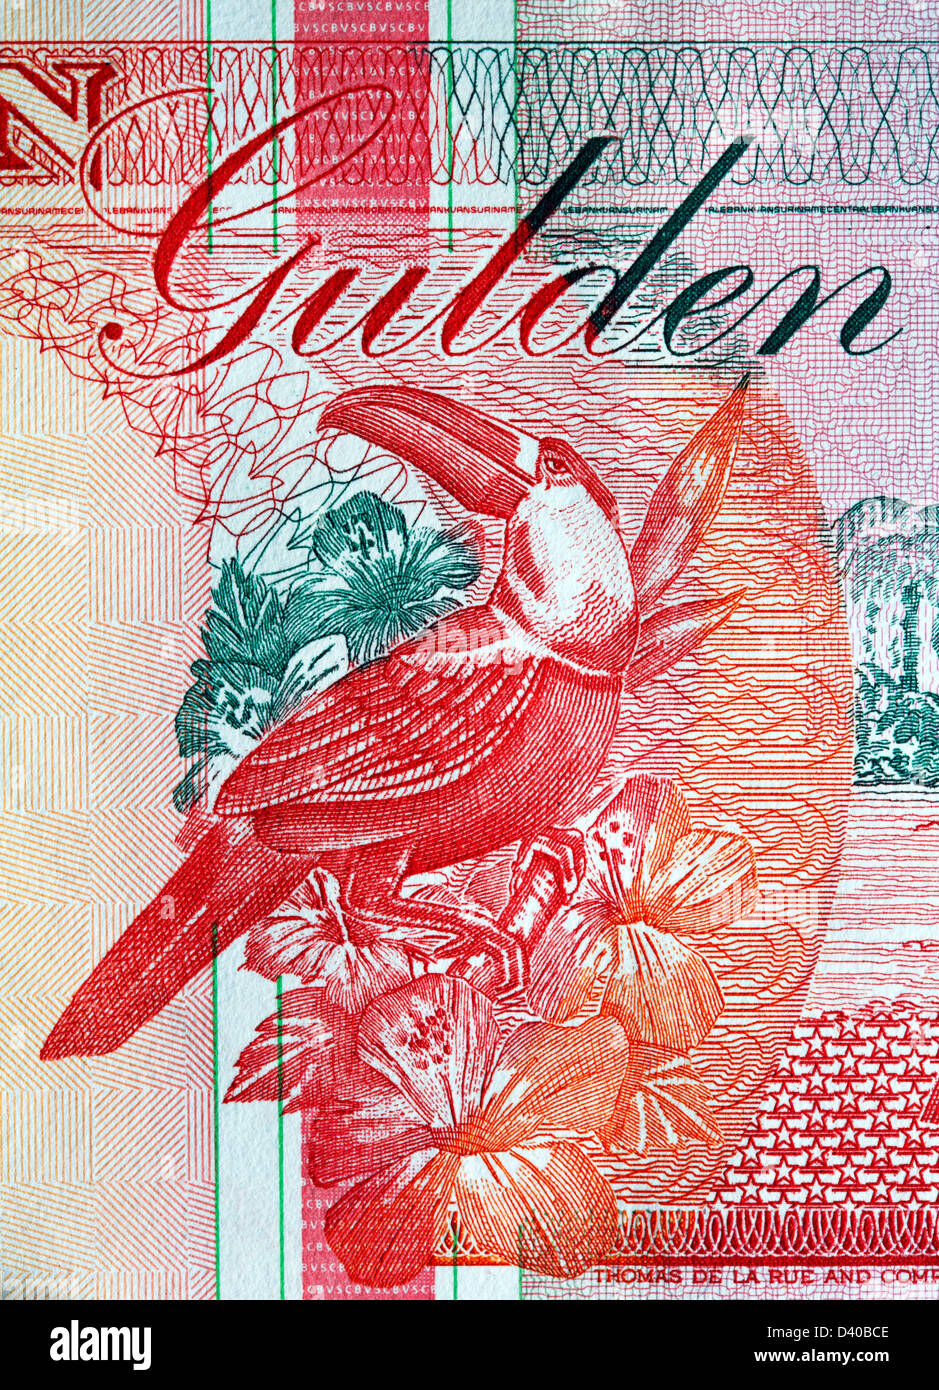 Toucan from 10 Gulden banknote, Suriname, 1998 - Stock Image